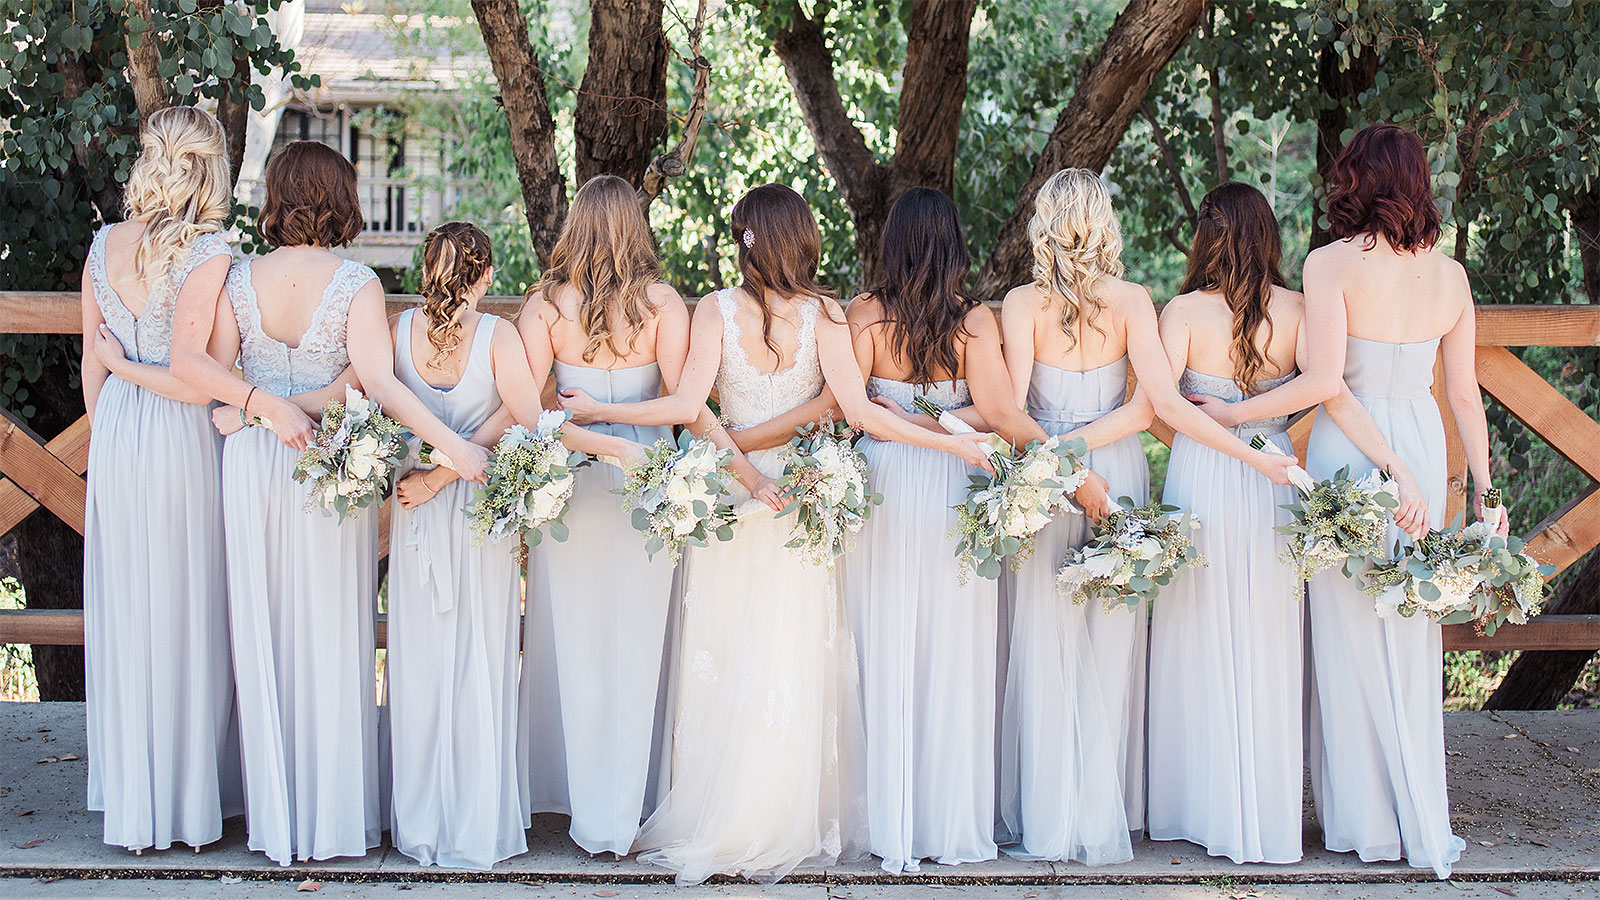 5 career (and work) lessons from wedding bridesmaids